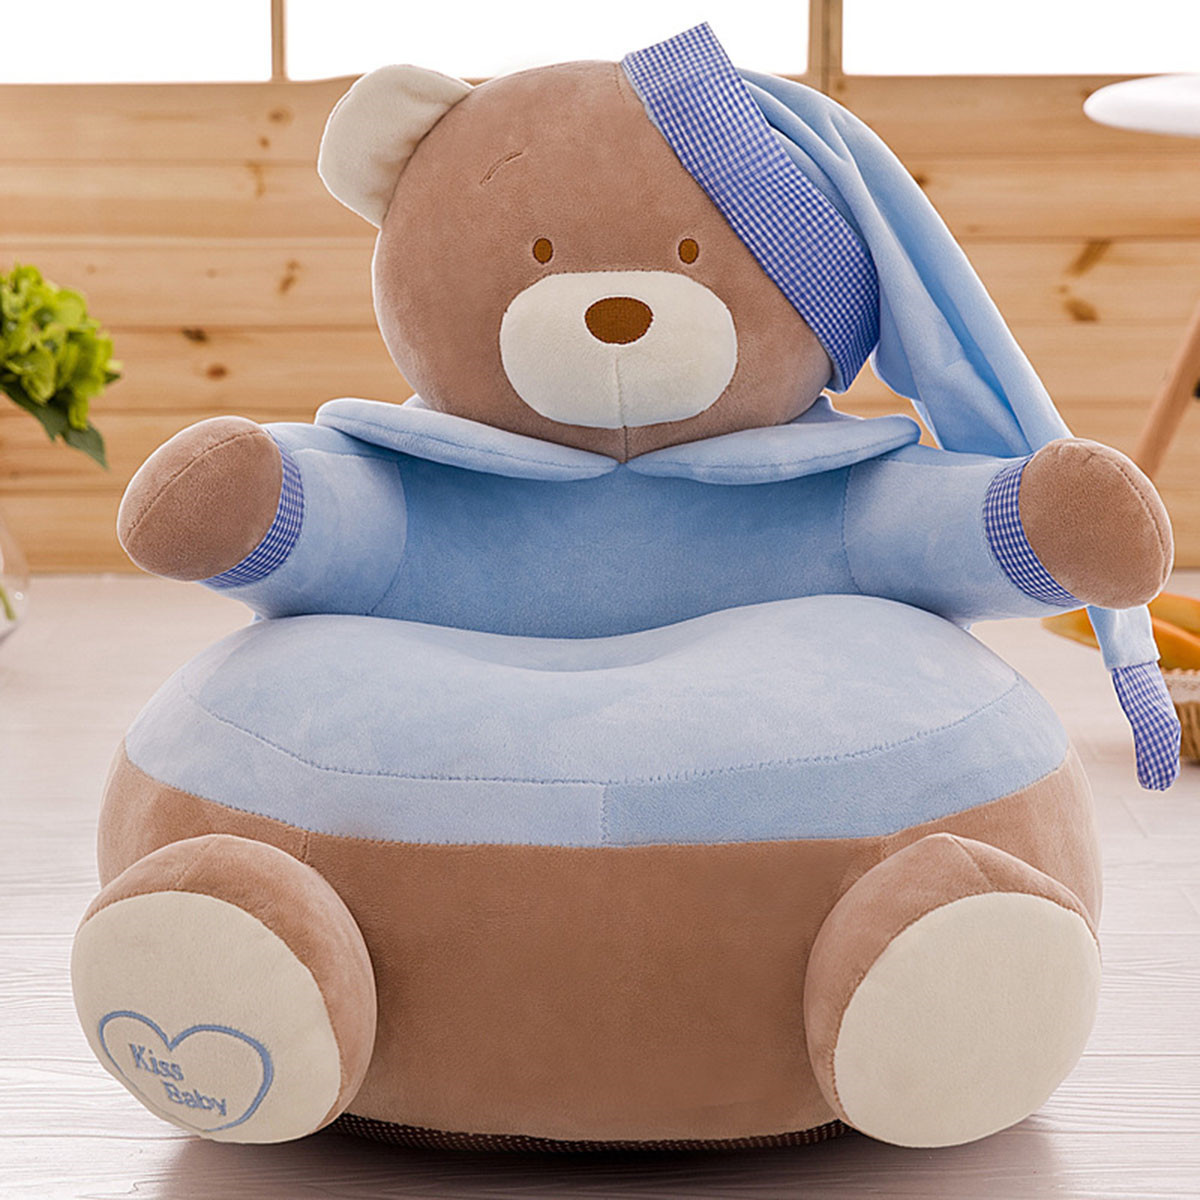 Plush Chairs Us 10 8 41 Off Aliexpress Buy Infant Baby Seats Skin Soft Sofa Plush Kids Bean Bag Chair Comfort Plush Cartoon Bear Chairs Washable Only Cover